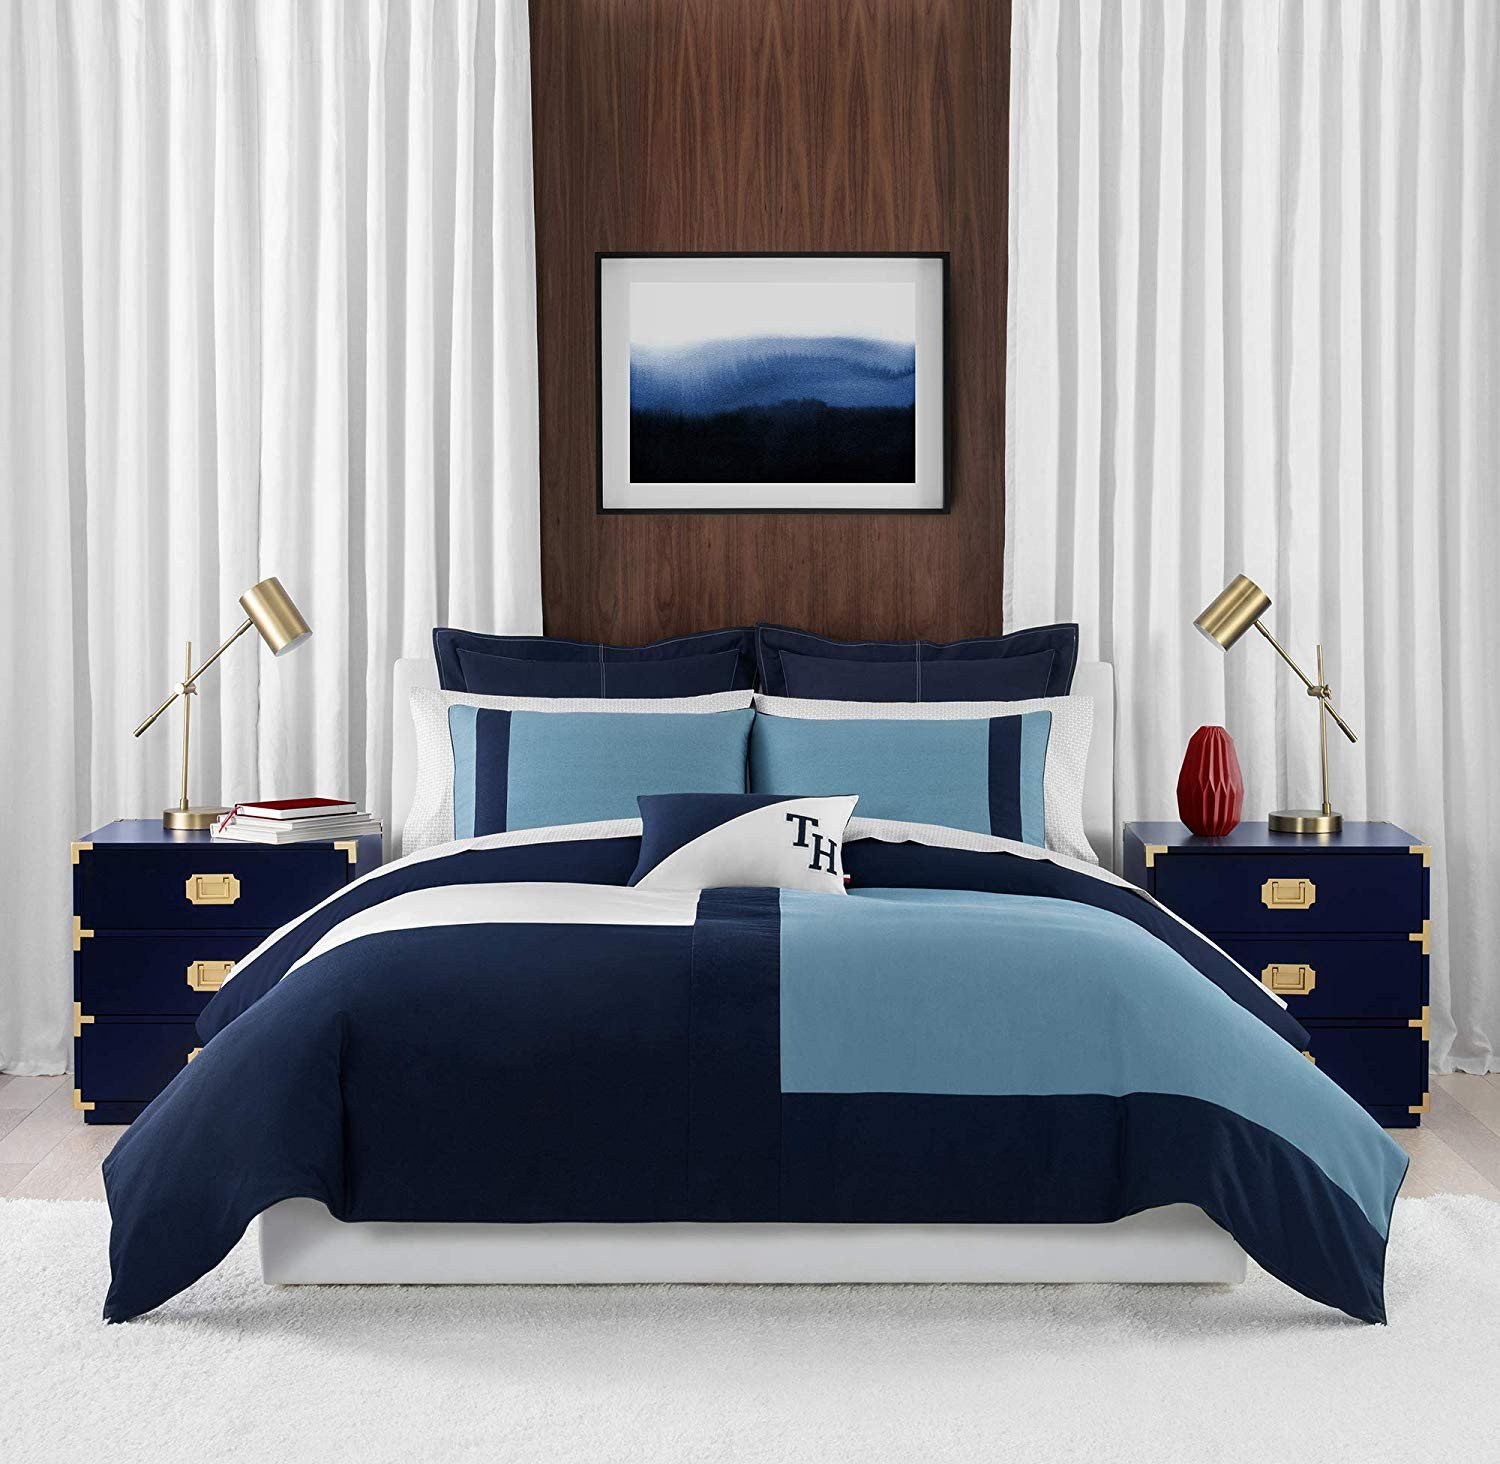 Shades Of Blue for Bedroom Fresh Amazon tommy Hilfiger Conscious Colorblock Bedding